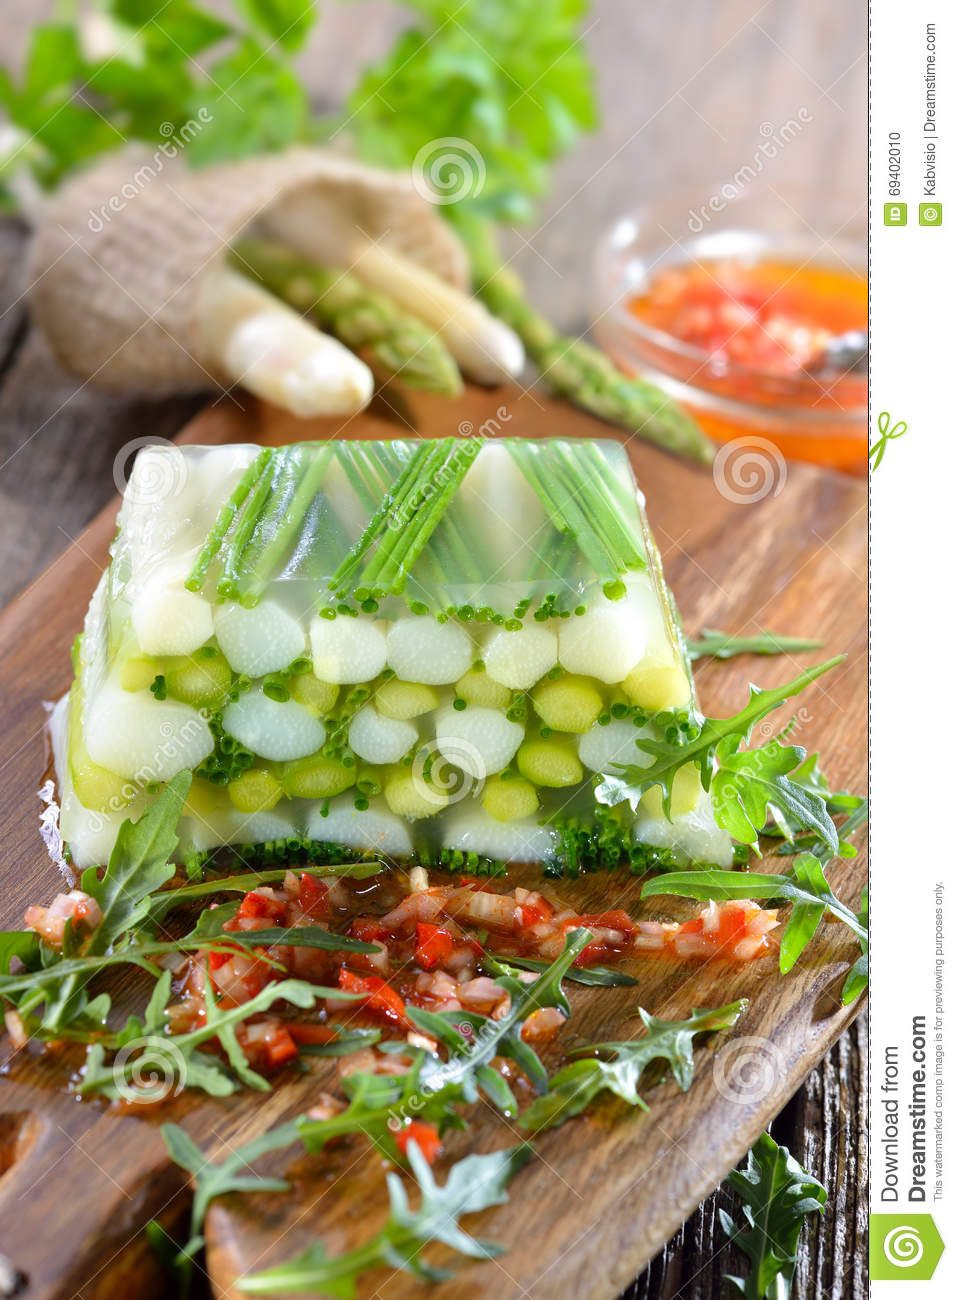 Asparagus Jelly With Vinaigrette Stock Photo - Image: 69402010